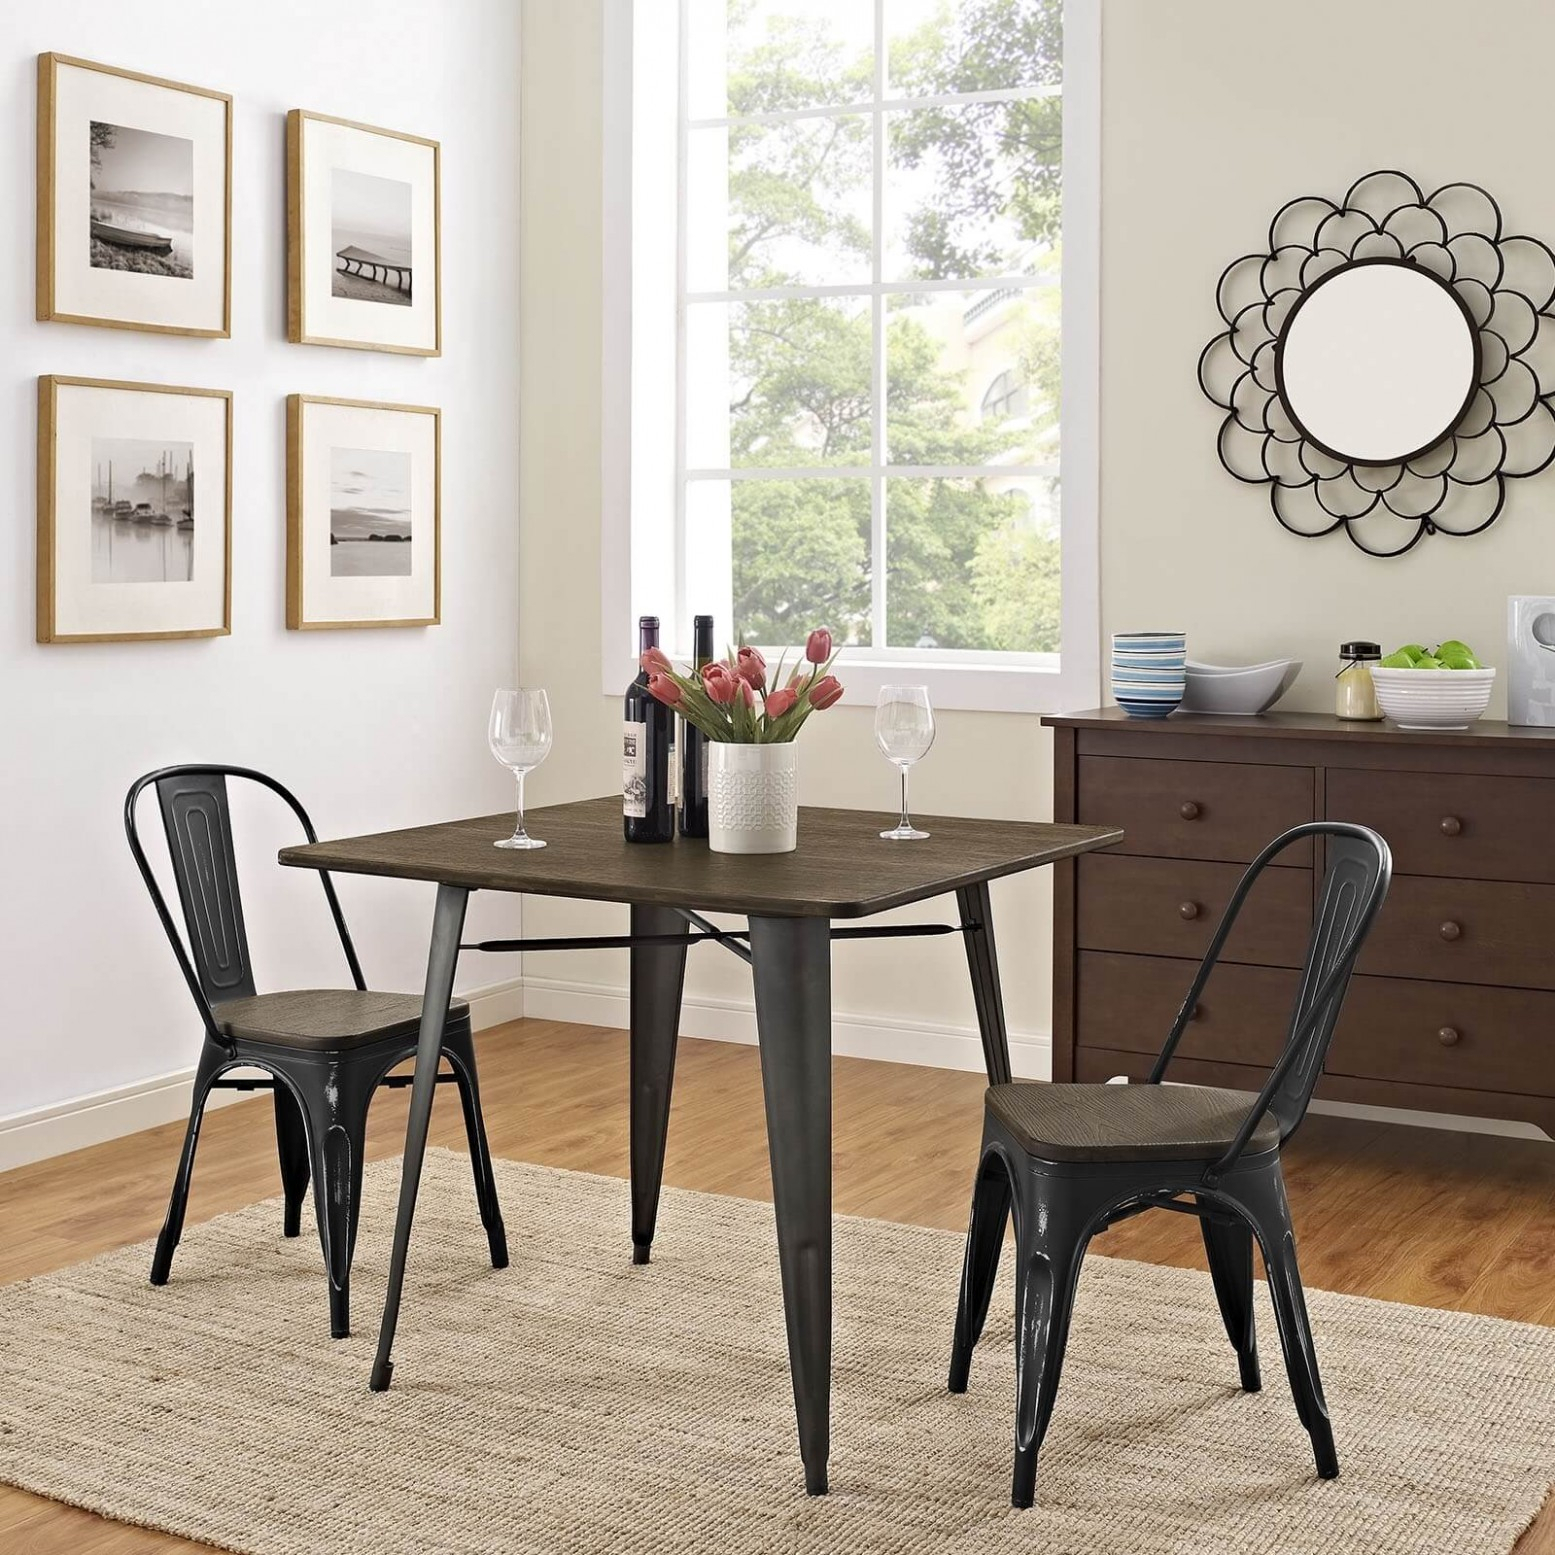 Alacrity 36 Square Wood Dining Table, Brownmodway Throughout Latest Hitchin 36'' Dining Tables (View 5 of 15)